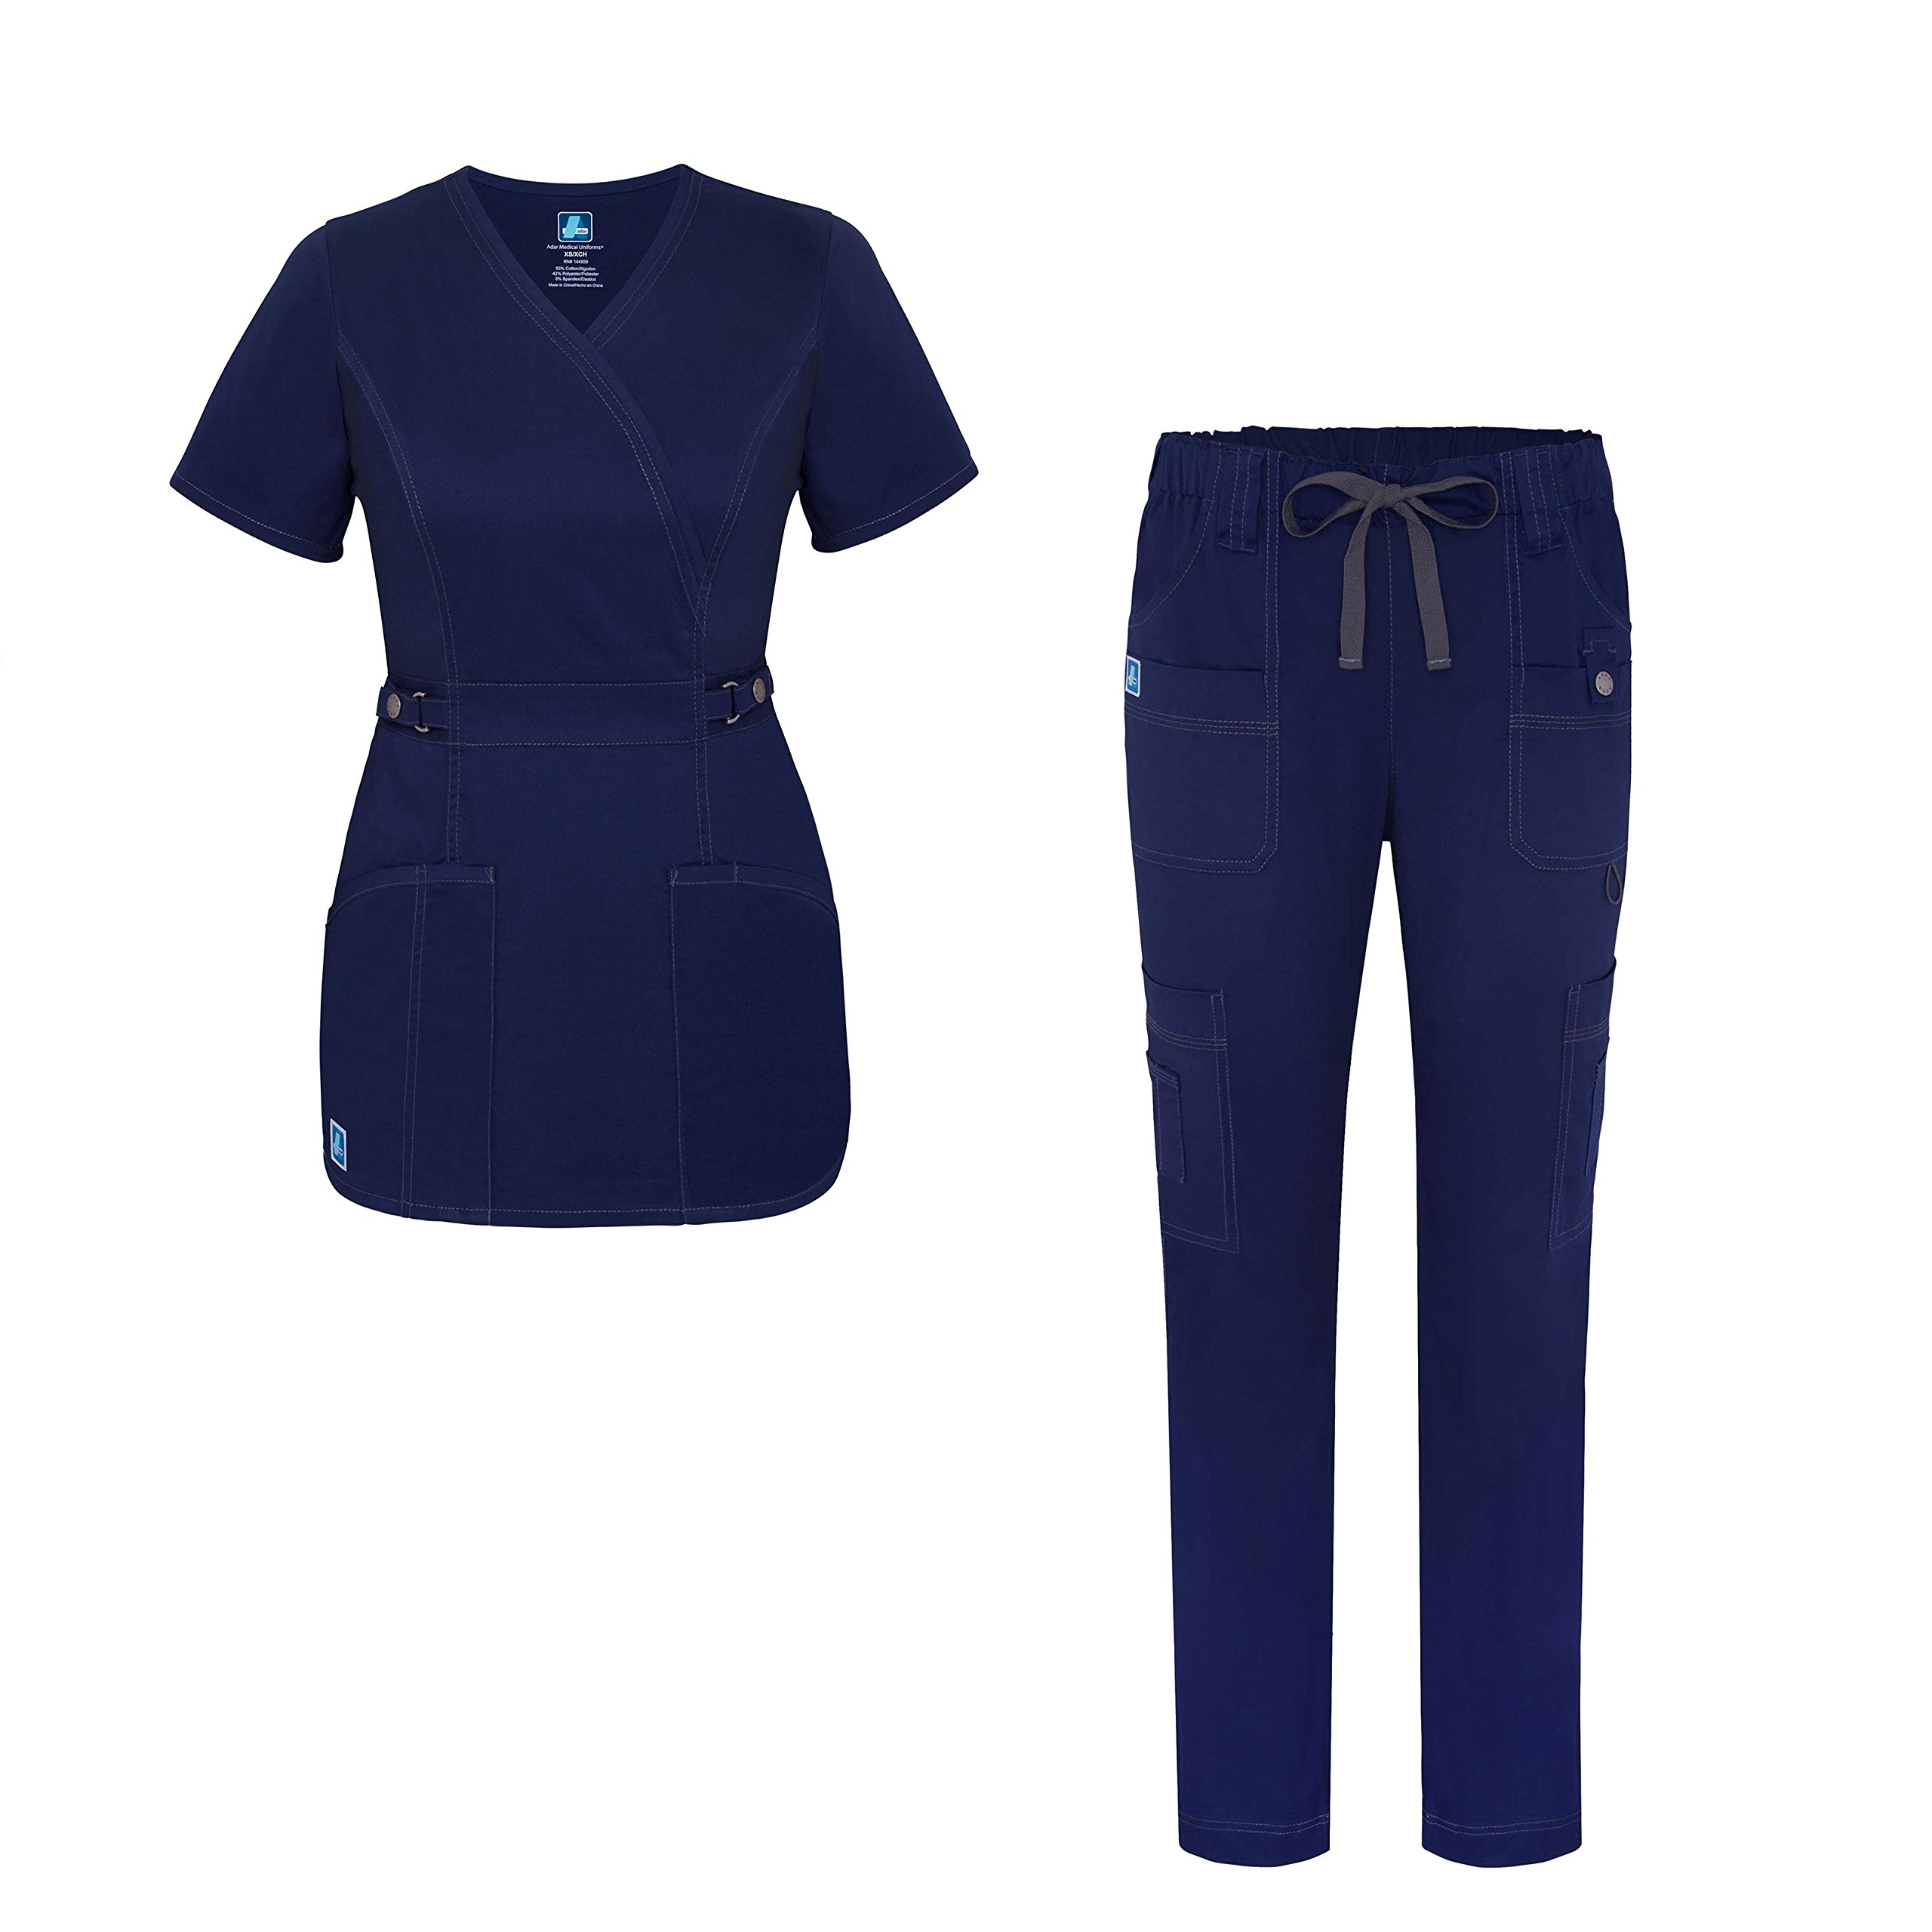 Pop-Stretch Jr. Fit Women Scrub Set - Crossover Scrub Top and Low Rise Slim Pants - 3505 - Navy - XXS